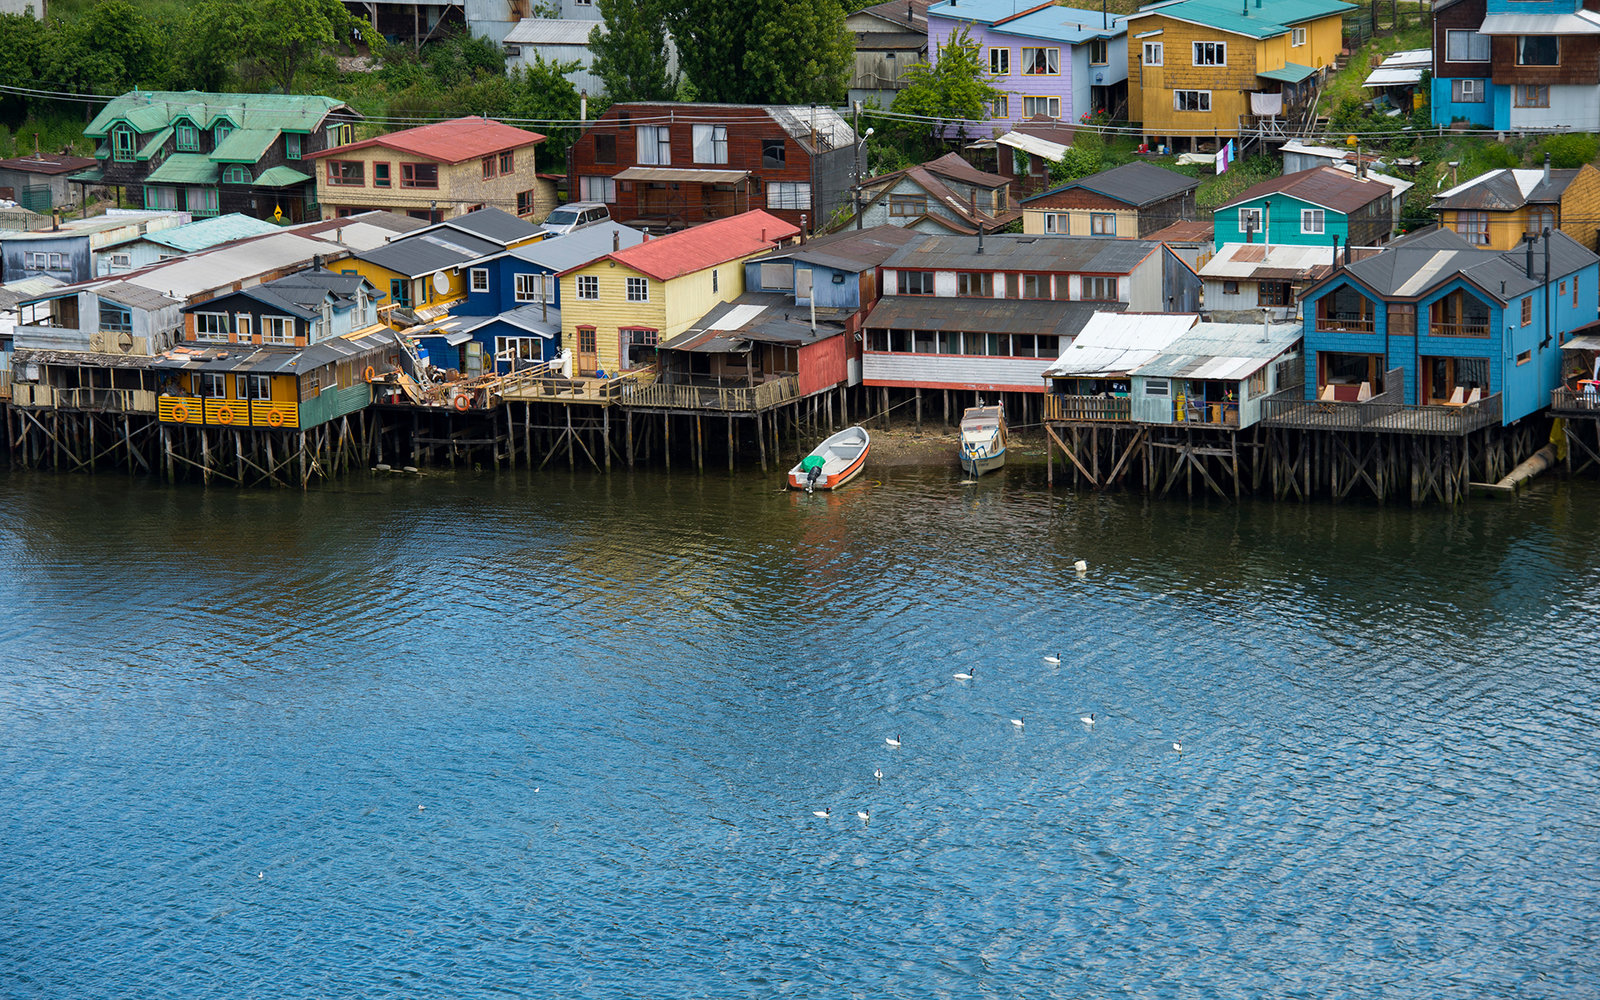 CHILE - 2013/12/14: View of houses on stilts (palafito) with Black-necked swans (Cygnus melancoryphus) swimming on the water in the town of Castro on Chiloe Island in southern Chile. (Photo by Wolfgang Kaehler/LightRocket via Getty Images)